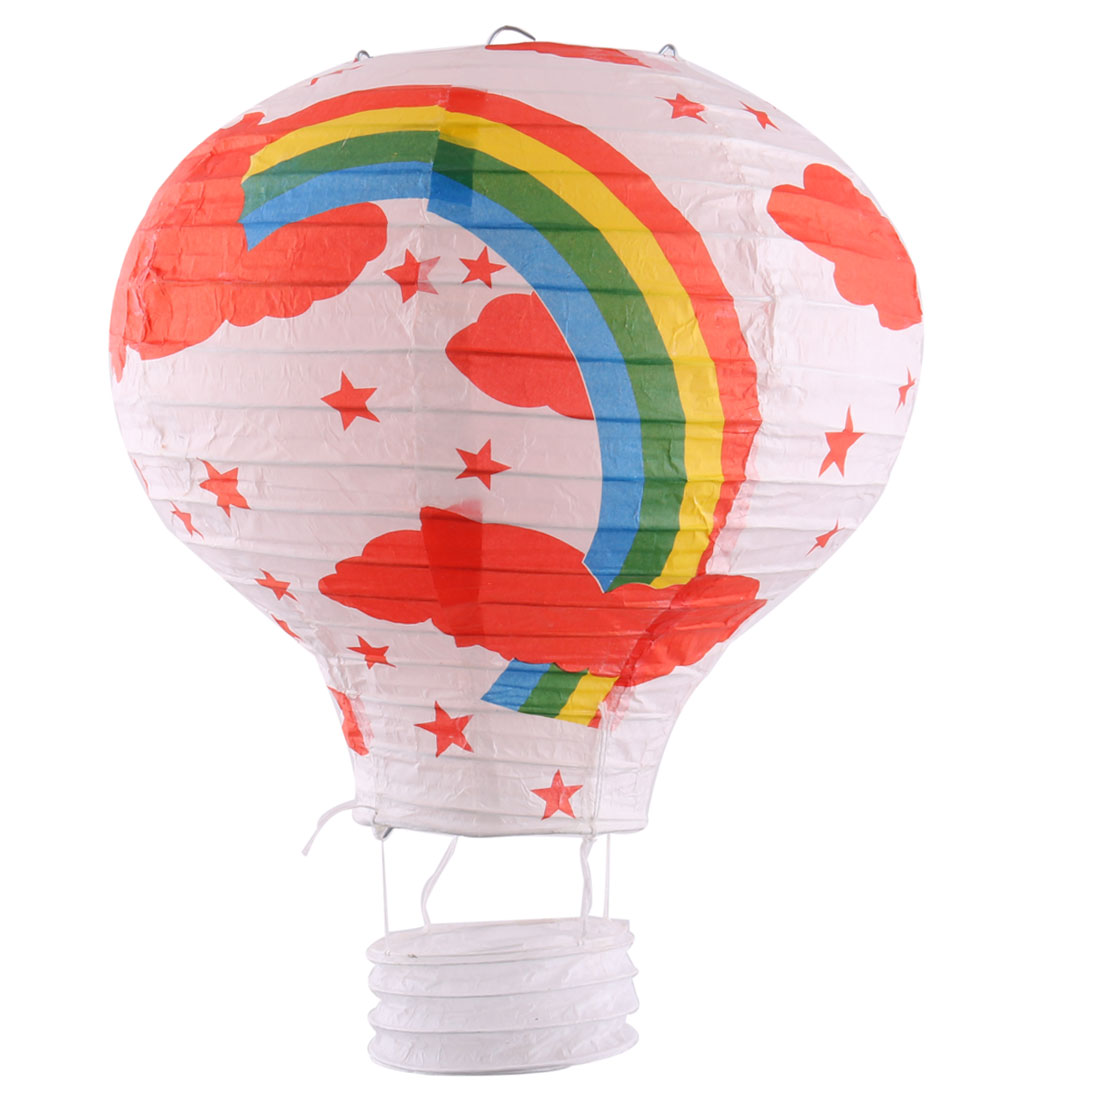 Paper Rainbow Pattern Hanging Decor Hot Air Balloon Lantern White 10 Inches Dia